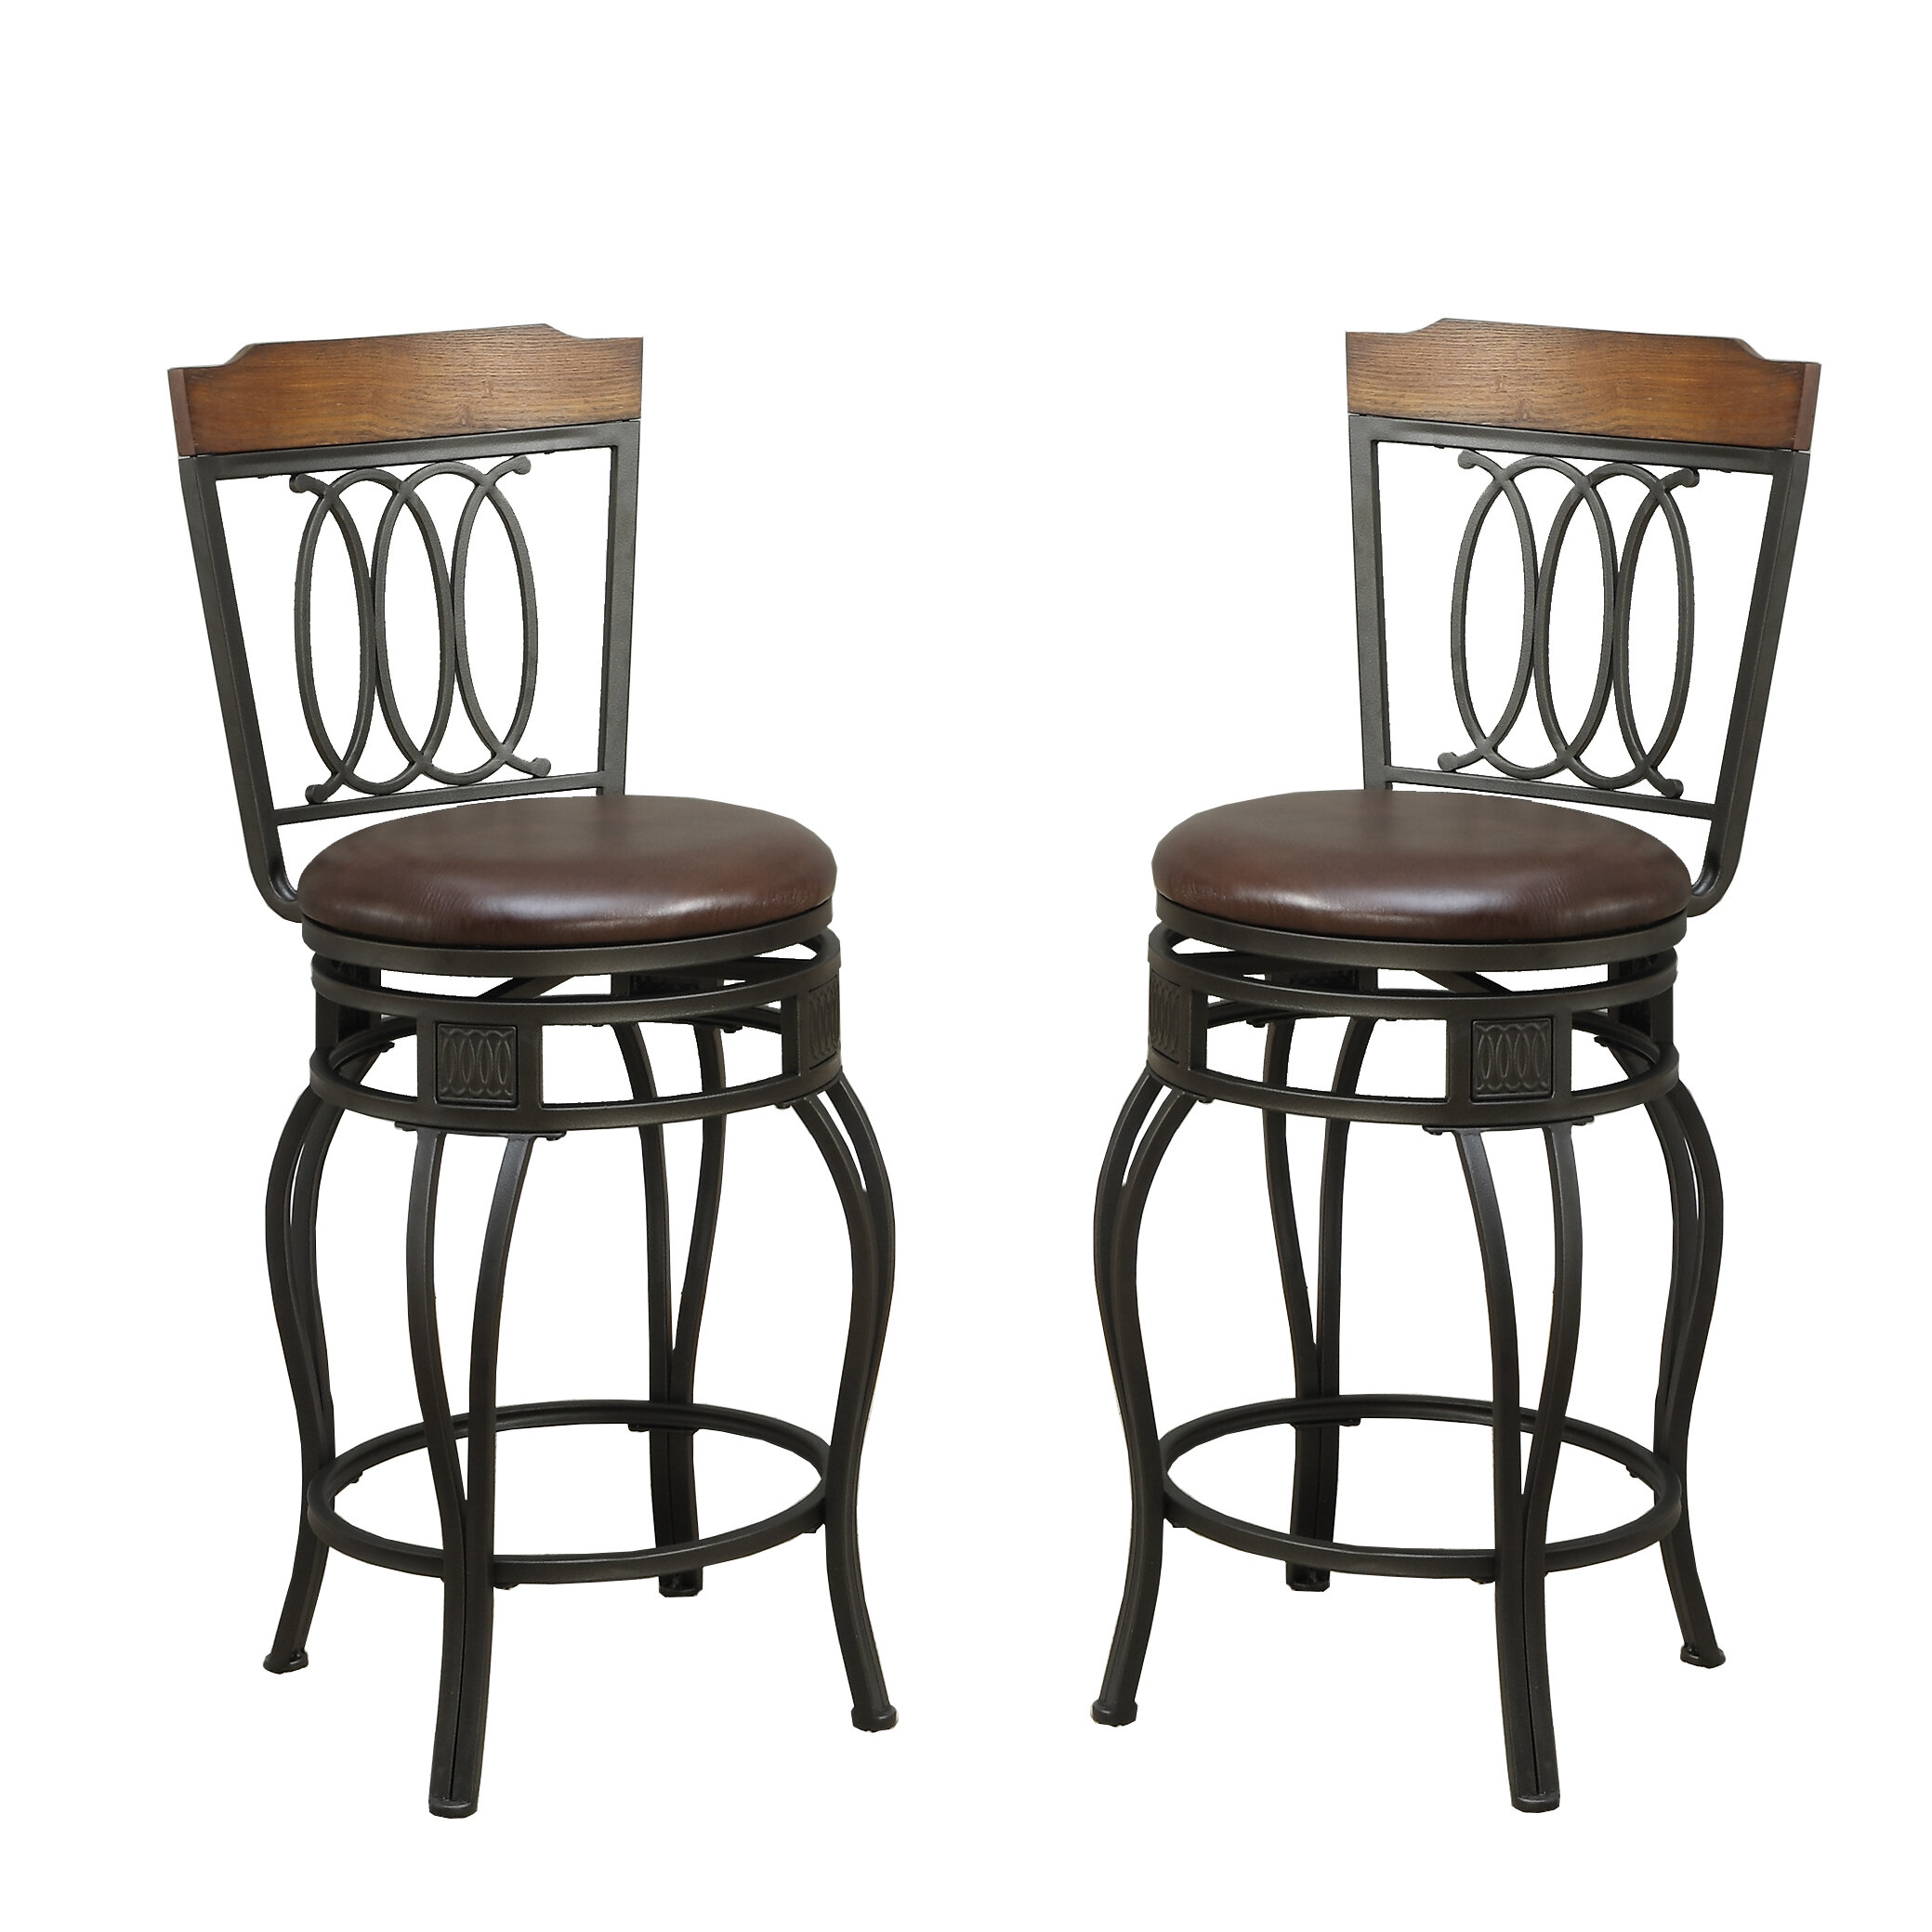 Peachy Pine Metal Bar Stools Youll Love In 2019 Wayfair Alphanode Cool Chair Designs And Ideas Alphanodeonline